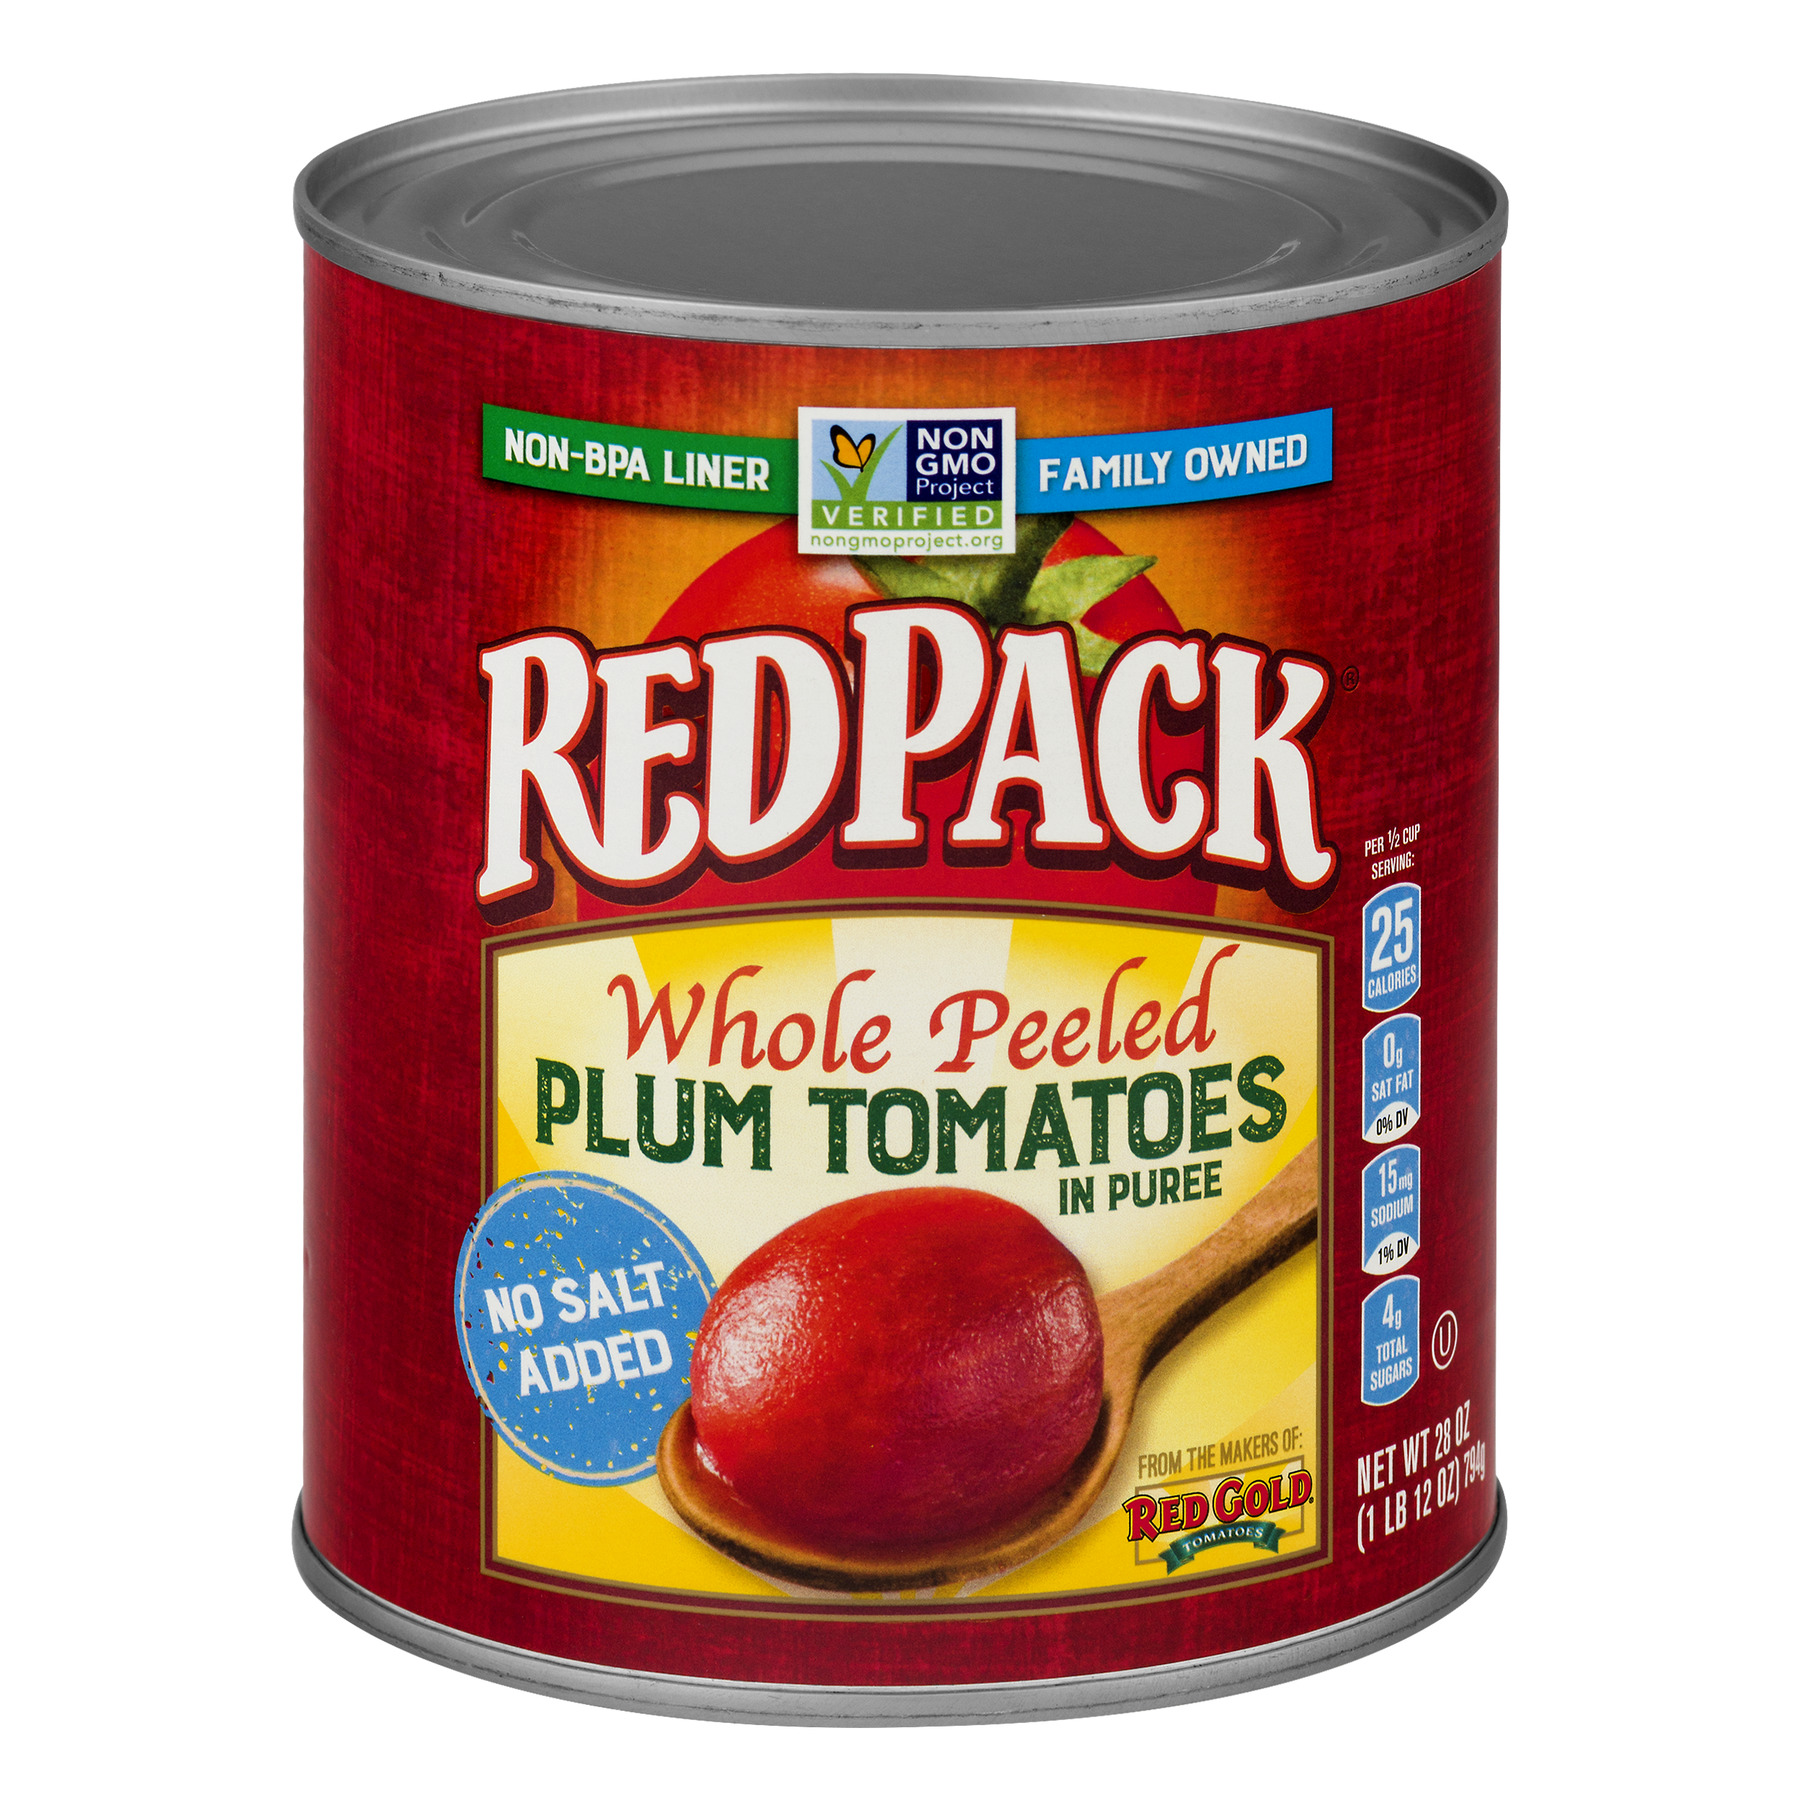 Redpack Tomatoes Plum Whole Peeled In Puree No Salt Added, 28.0 OZ